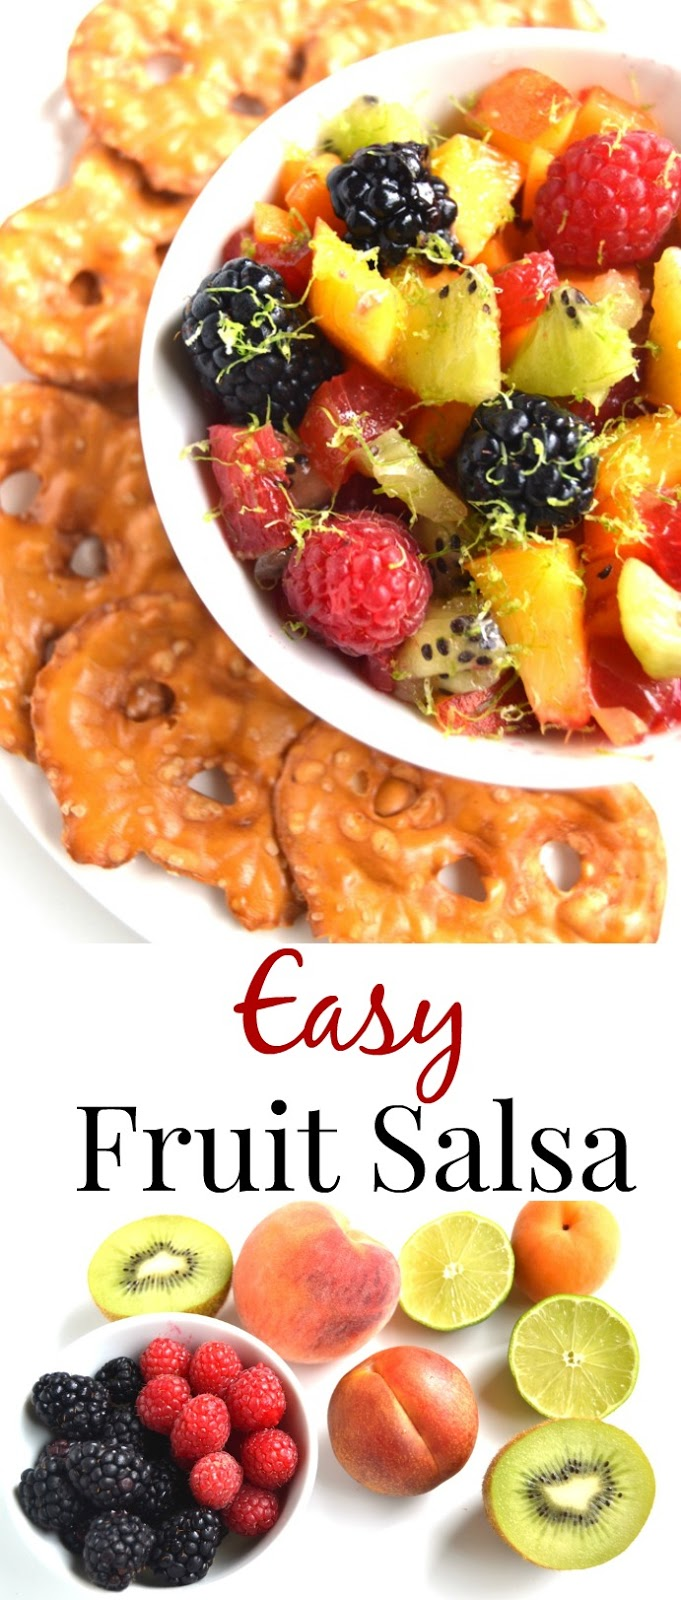 This Easy Fruit Salsa with lime dressing takes 5 minutes to make, is the perfect healthy snack and is completely customizable! www.nutritionistreviews.com